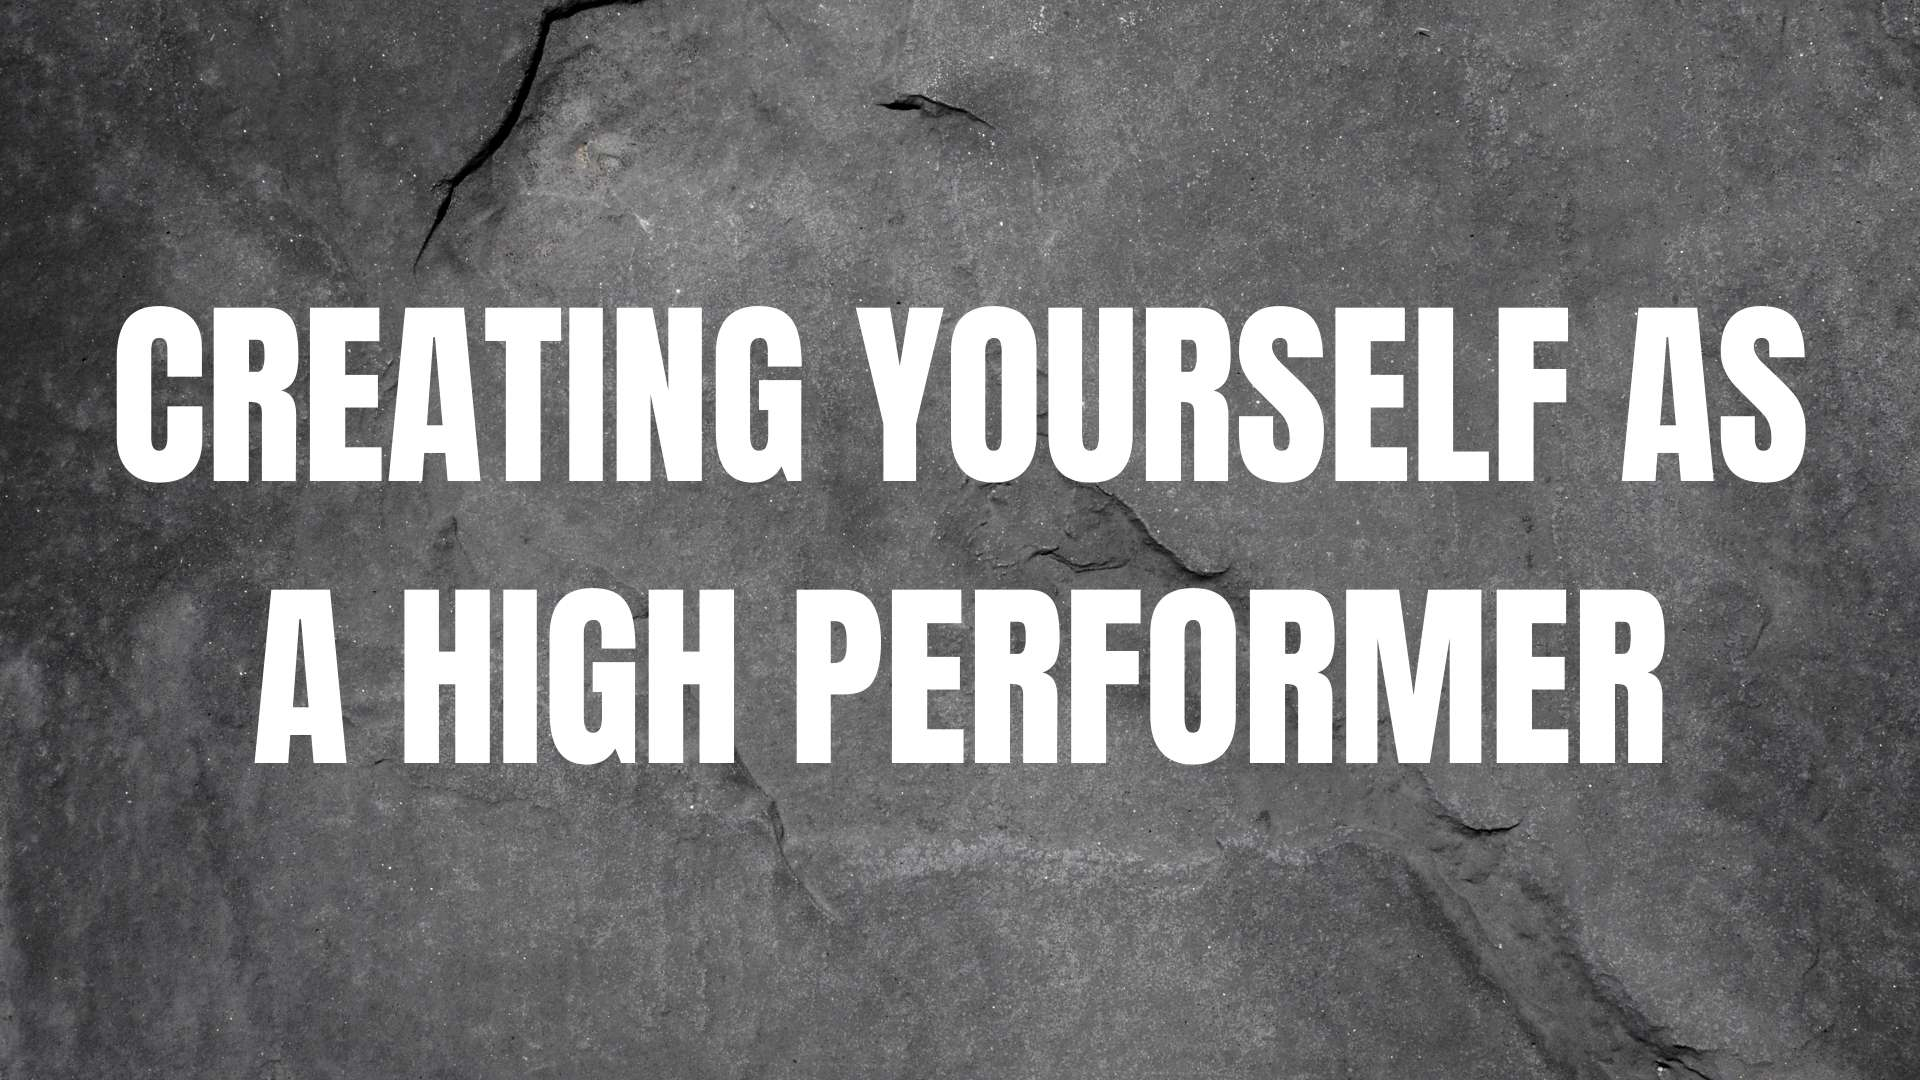 Creating yourself as a high performer